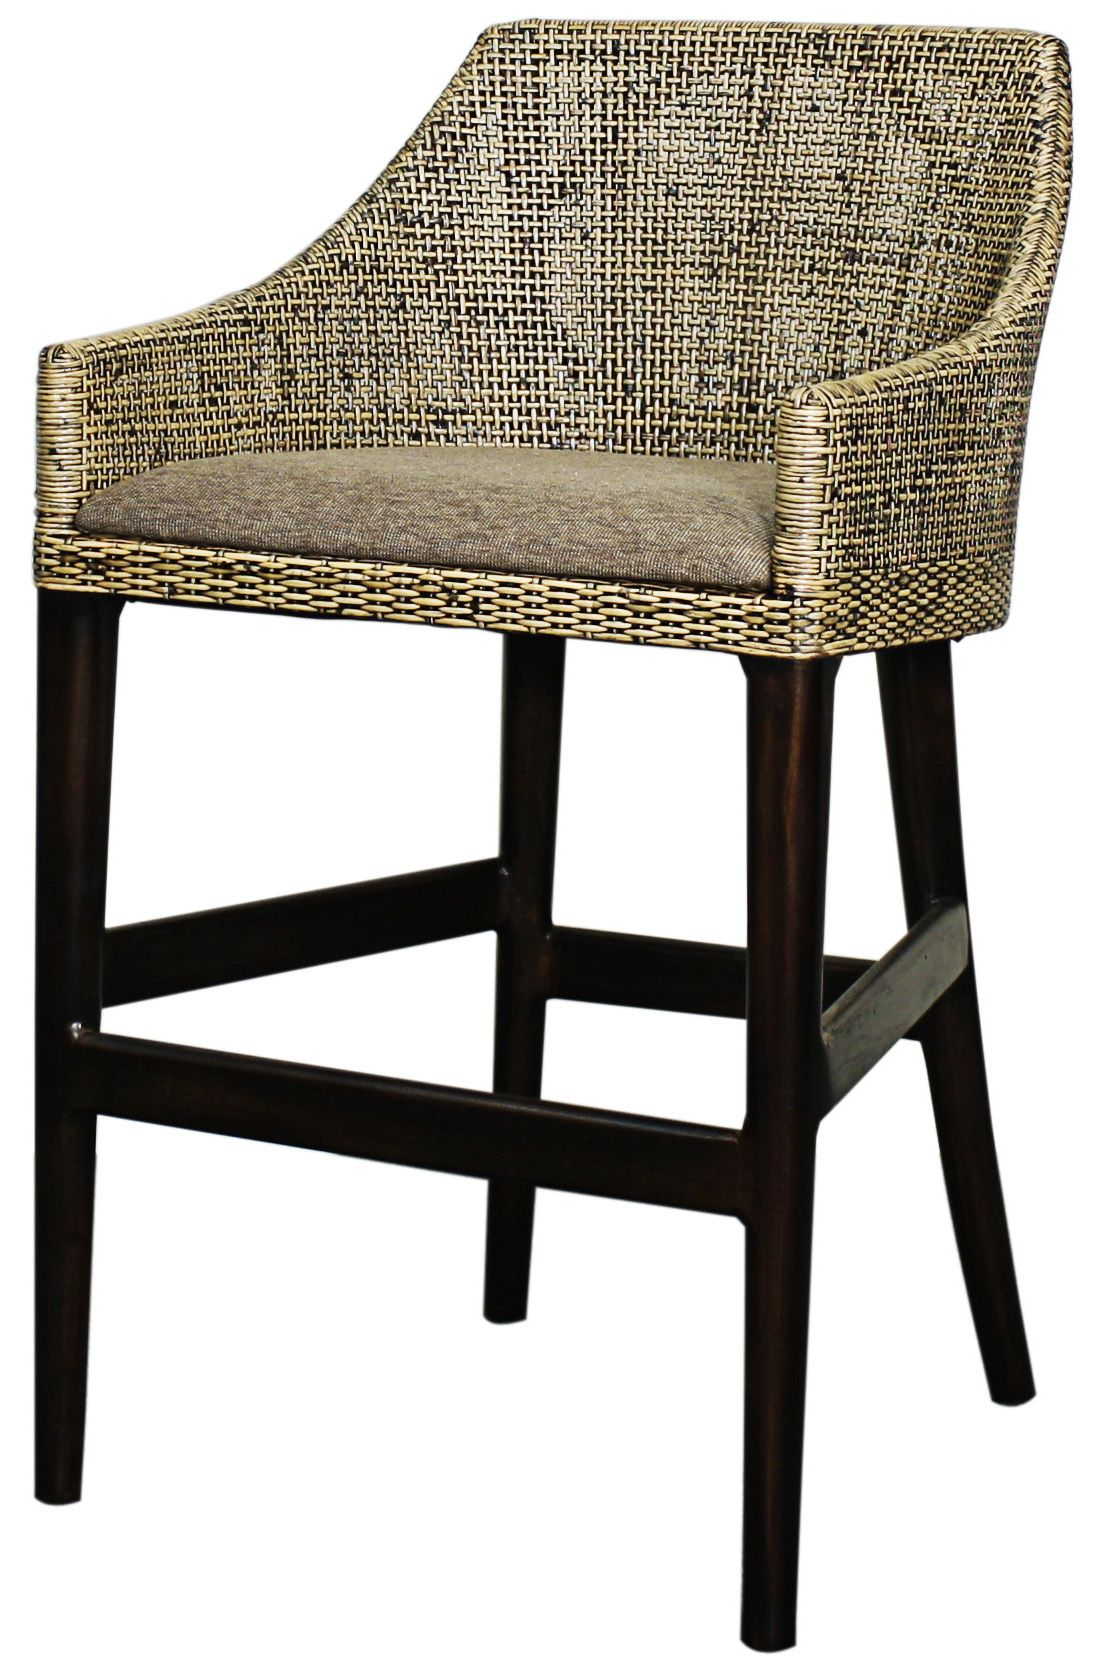 Orlanda Counter Stool With Black Shadow Leg Solid Mindy Wood And Rattan Materials Npd Counter Stools Wood Counter Stools Rattan Counter Stools